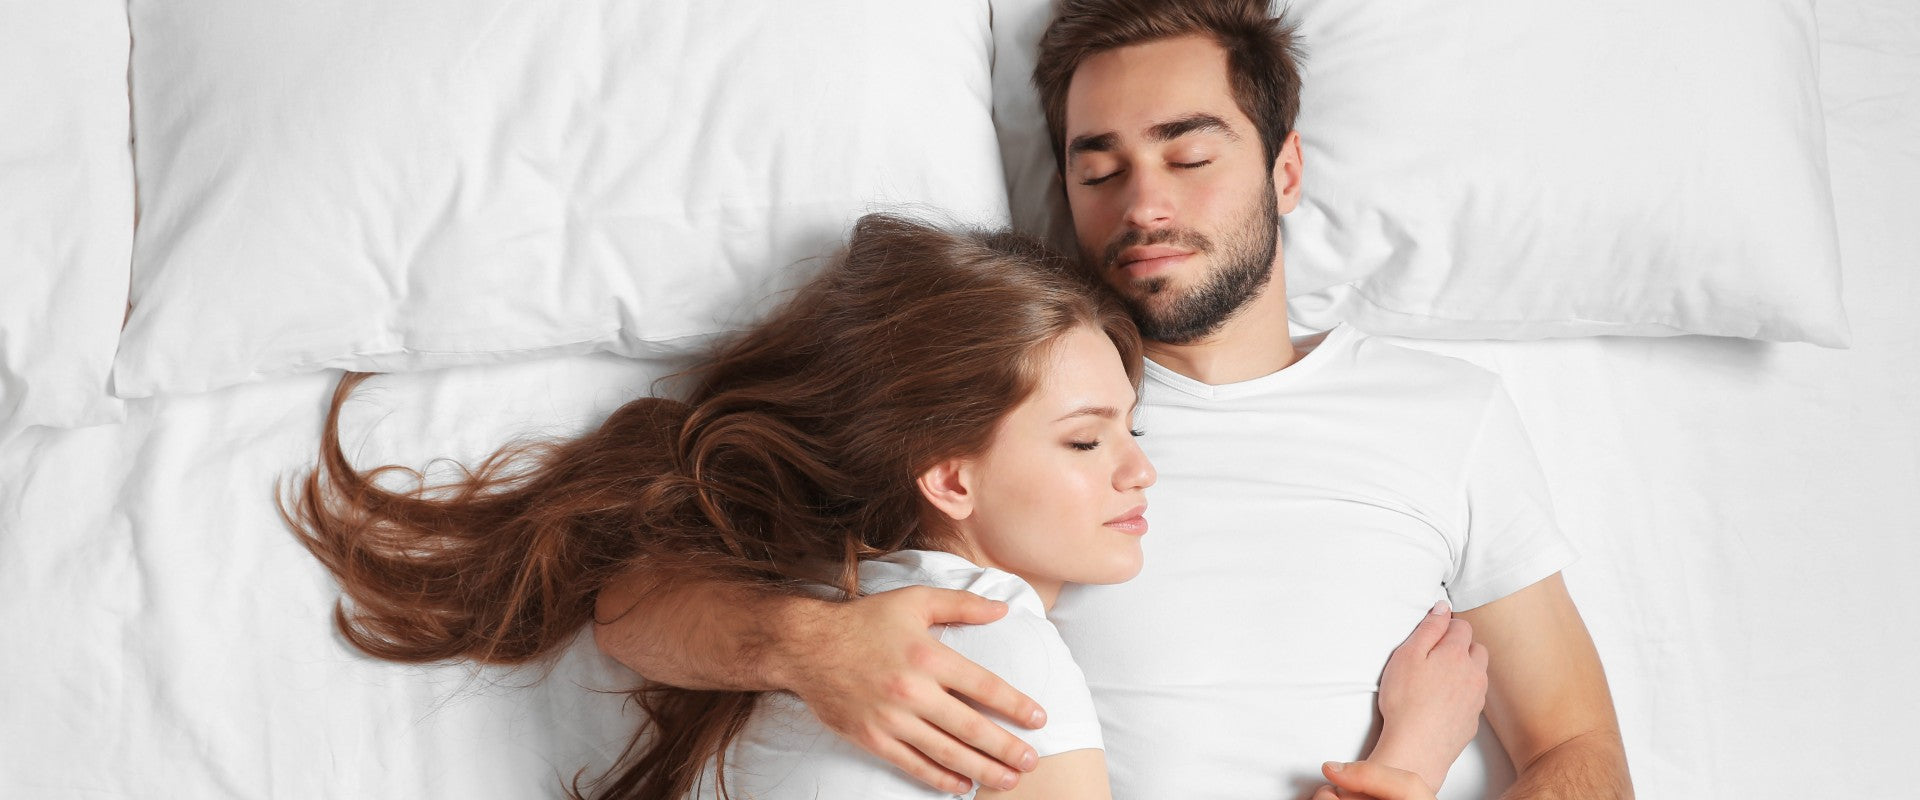 12 Types of Couple Sleeping Positions and What They Mean